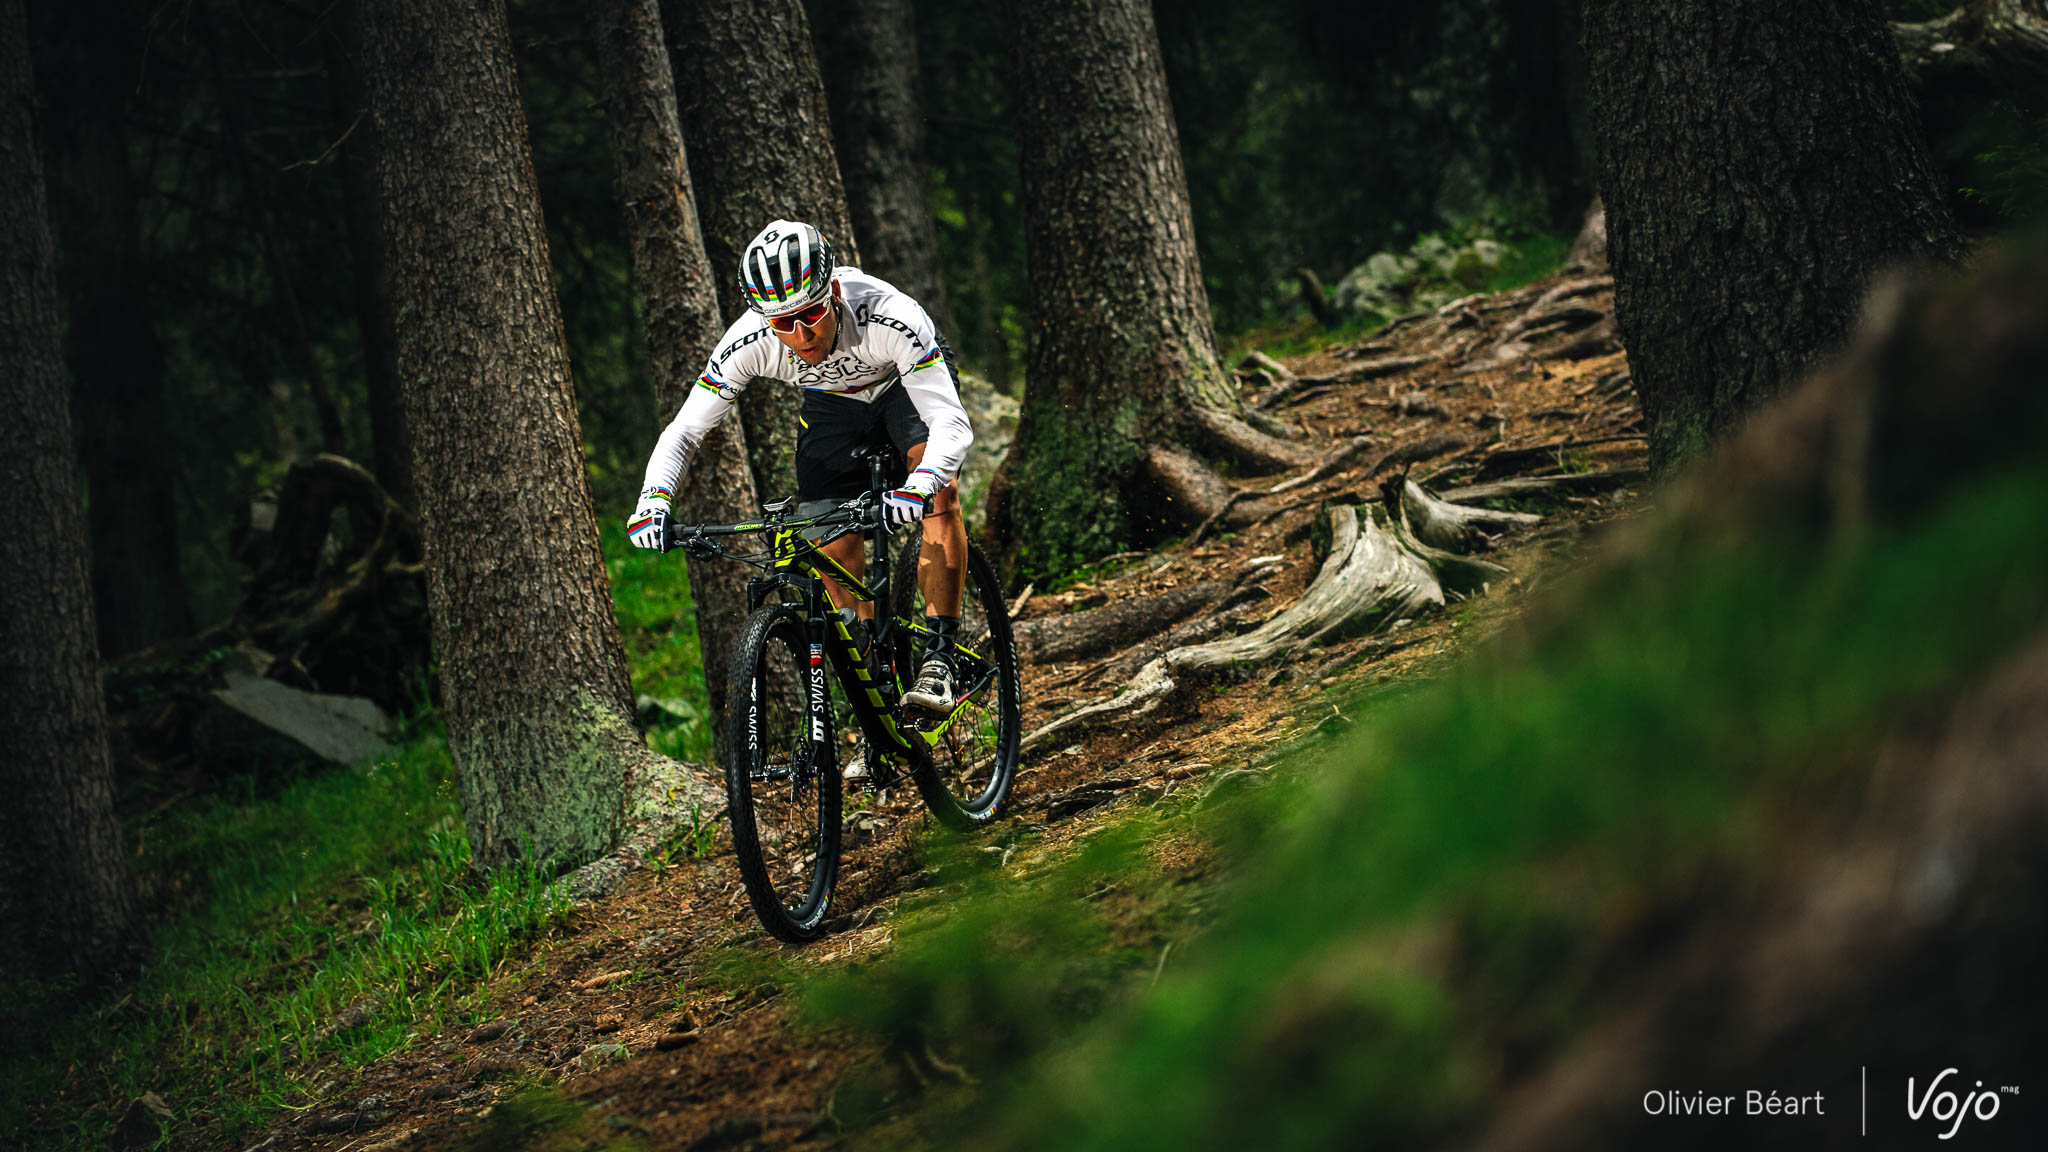 Nino_Schurter_Interview_Scott_Spark_Scale_Copyright_OBeart_VojoMag-2